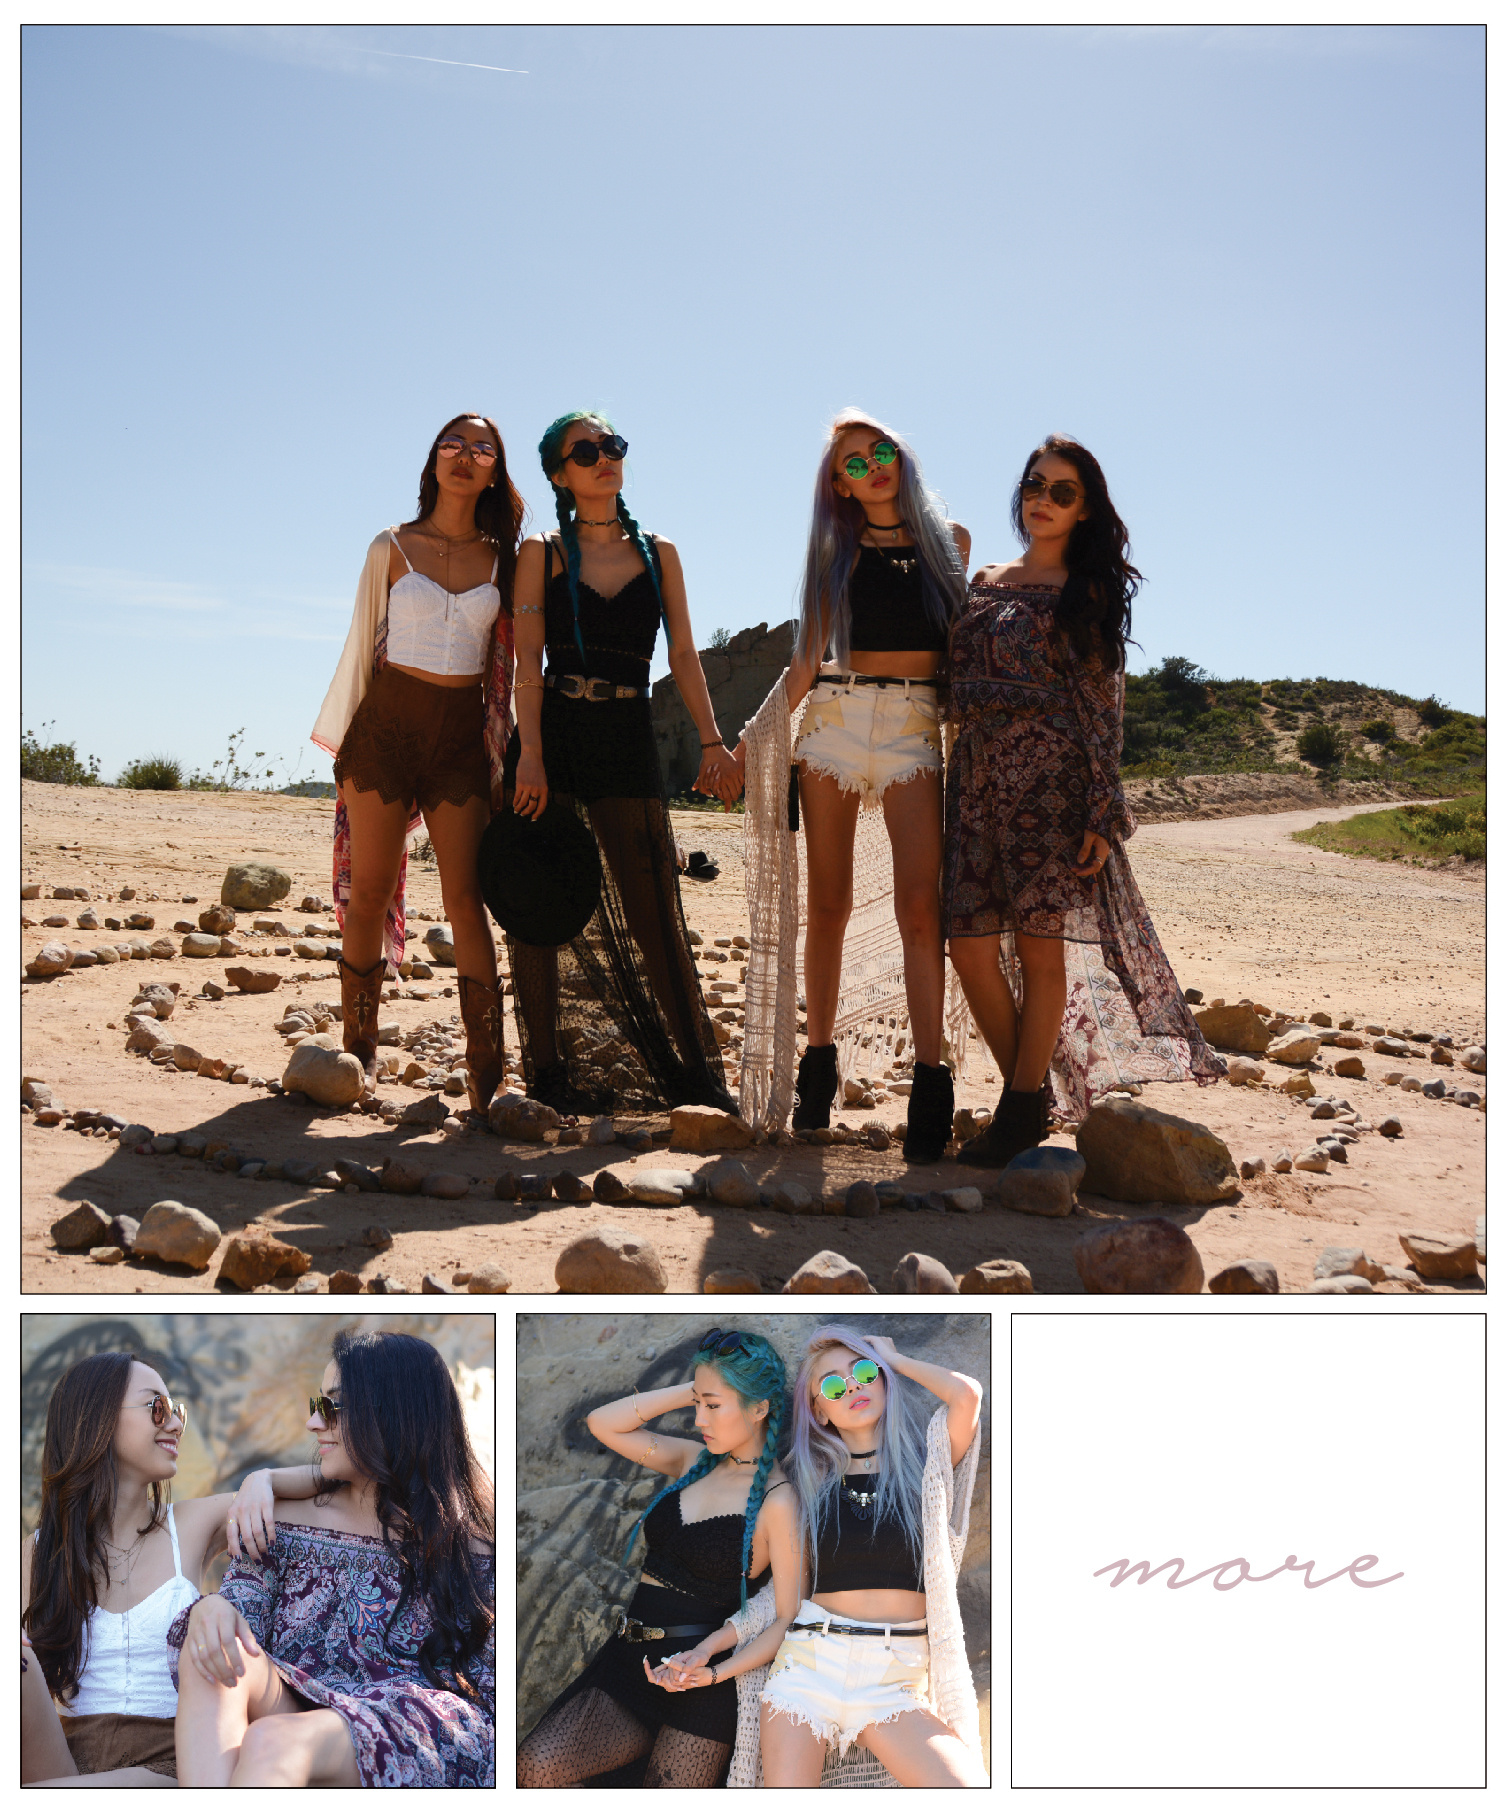 """With festival season around the corner, we gathered up our squad and brought Coachella to Malibu to have a """"festival"""" of our own. Click on image above for the full blog post!"""